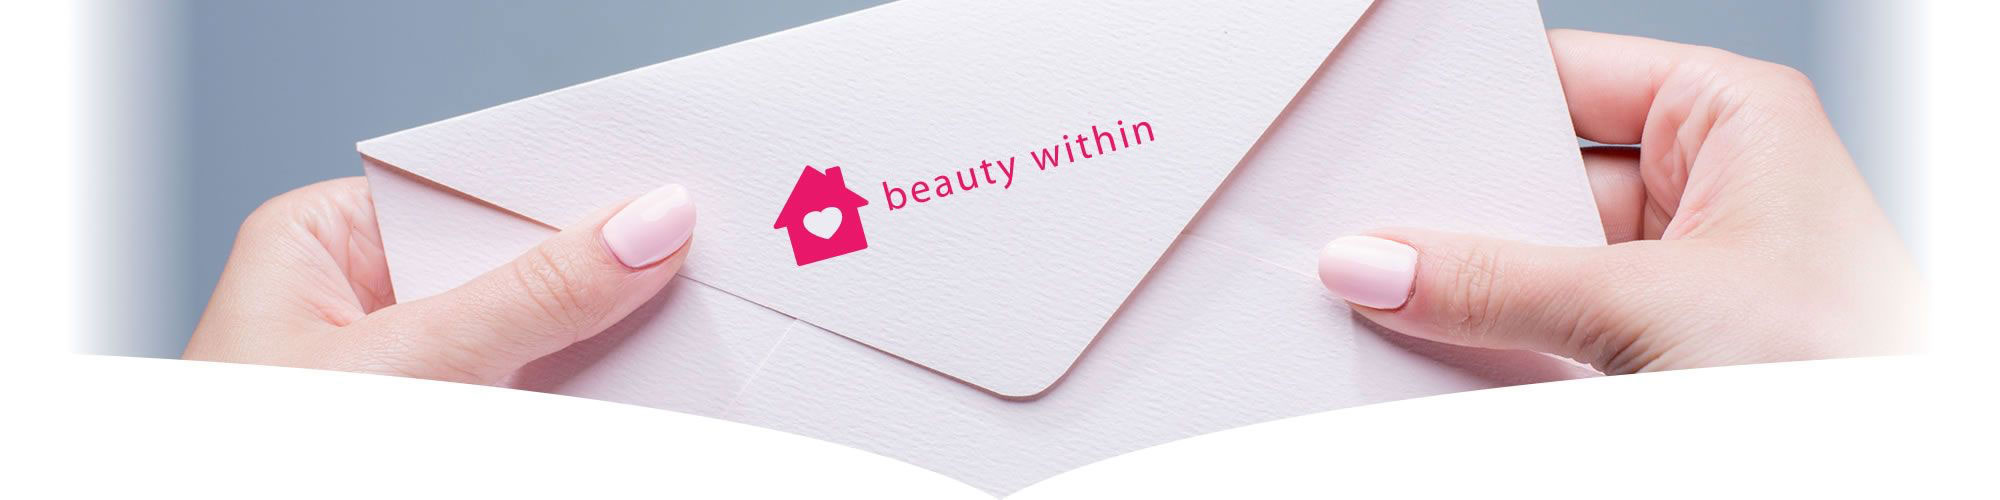 Beauty Within gift voucher